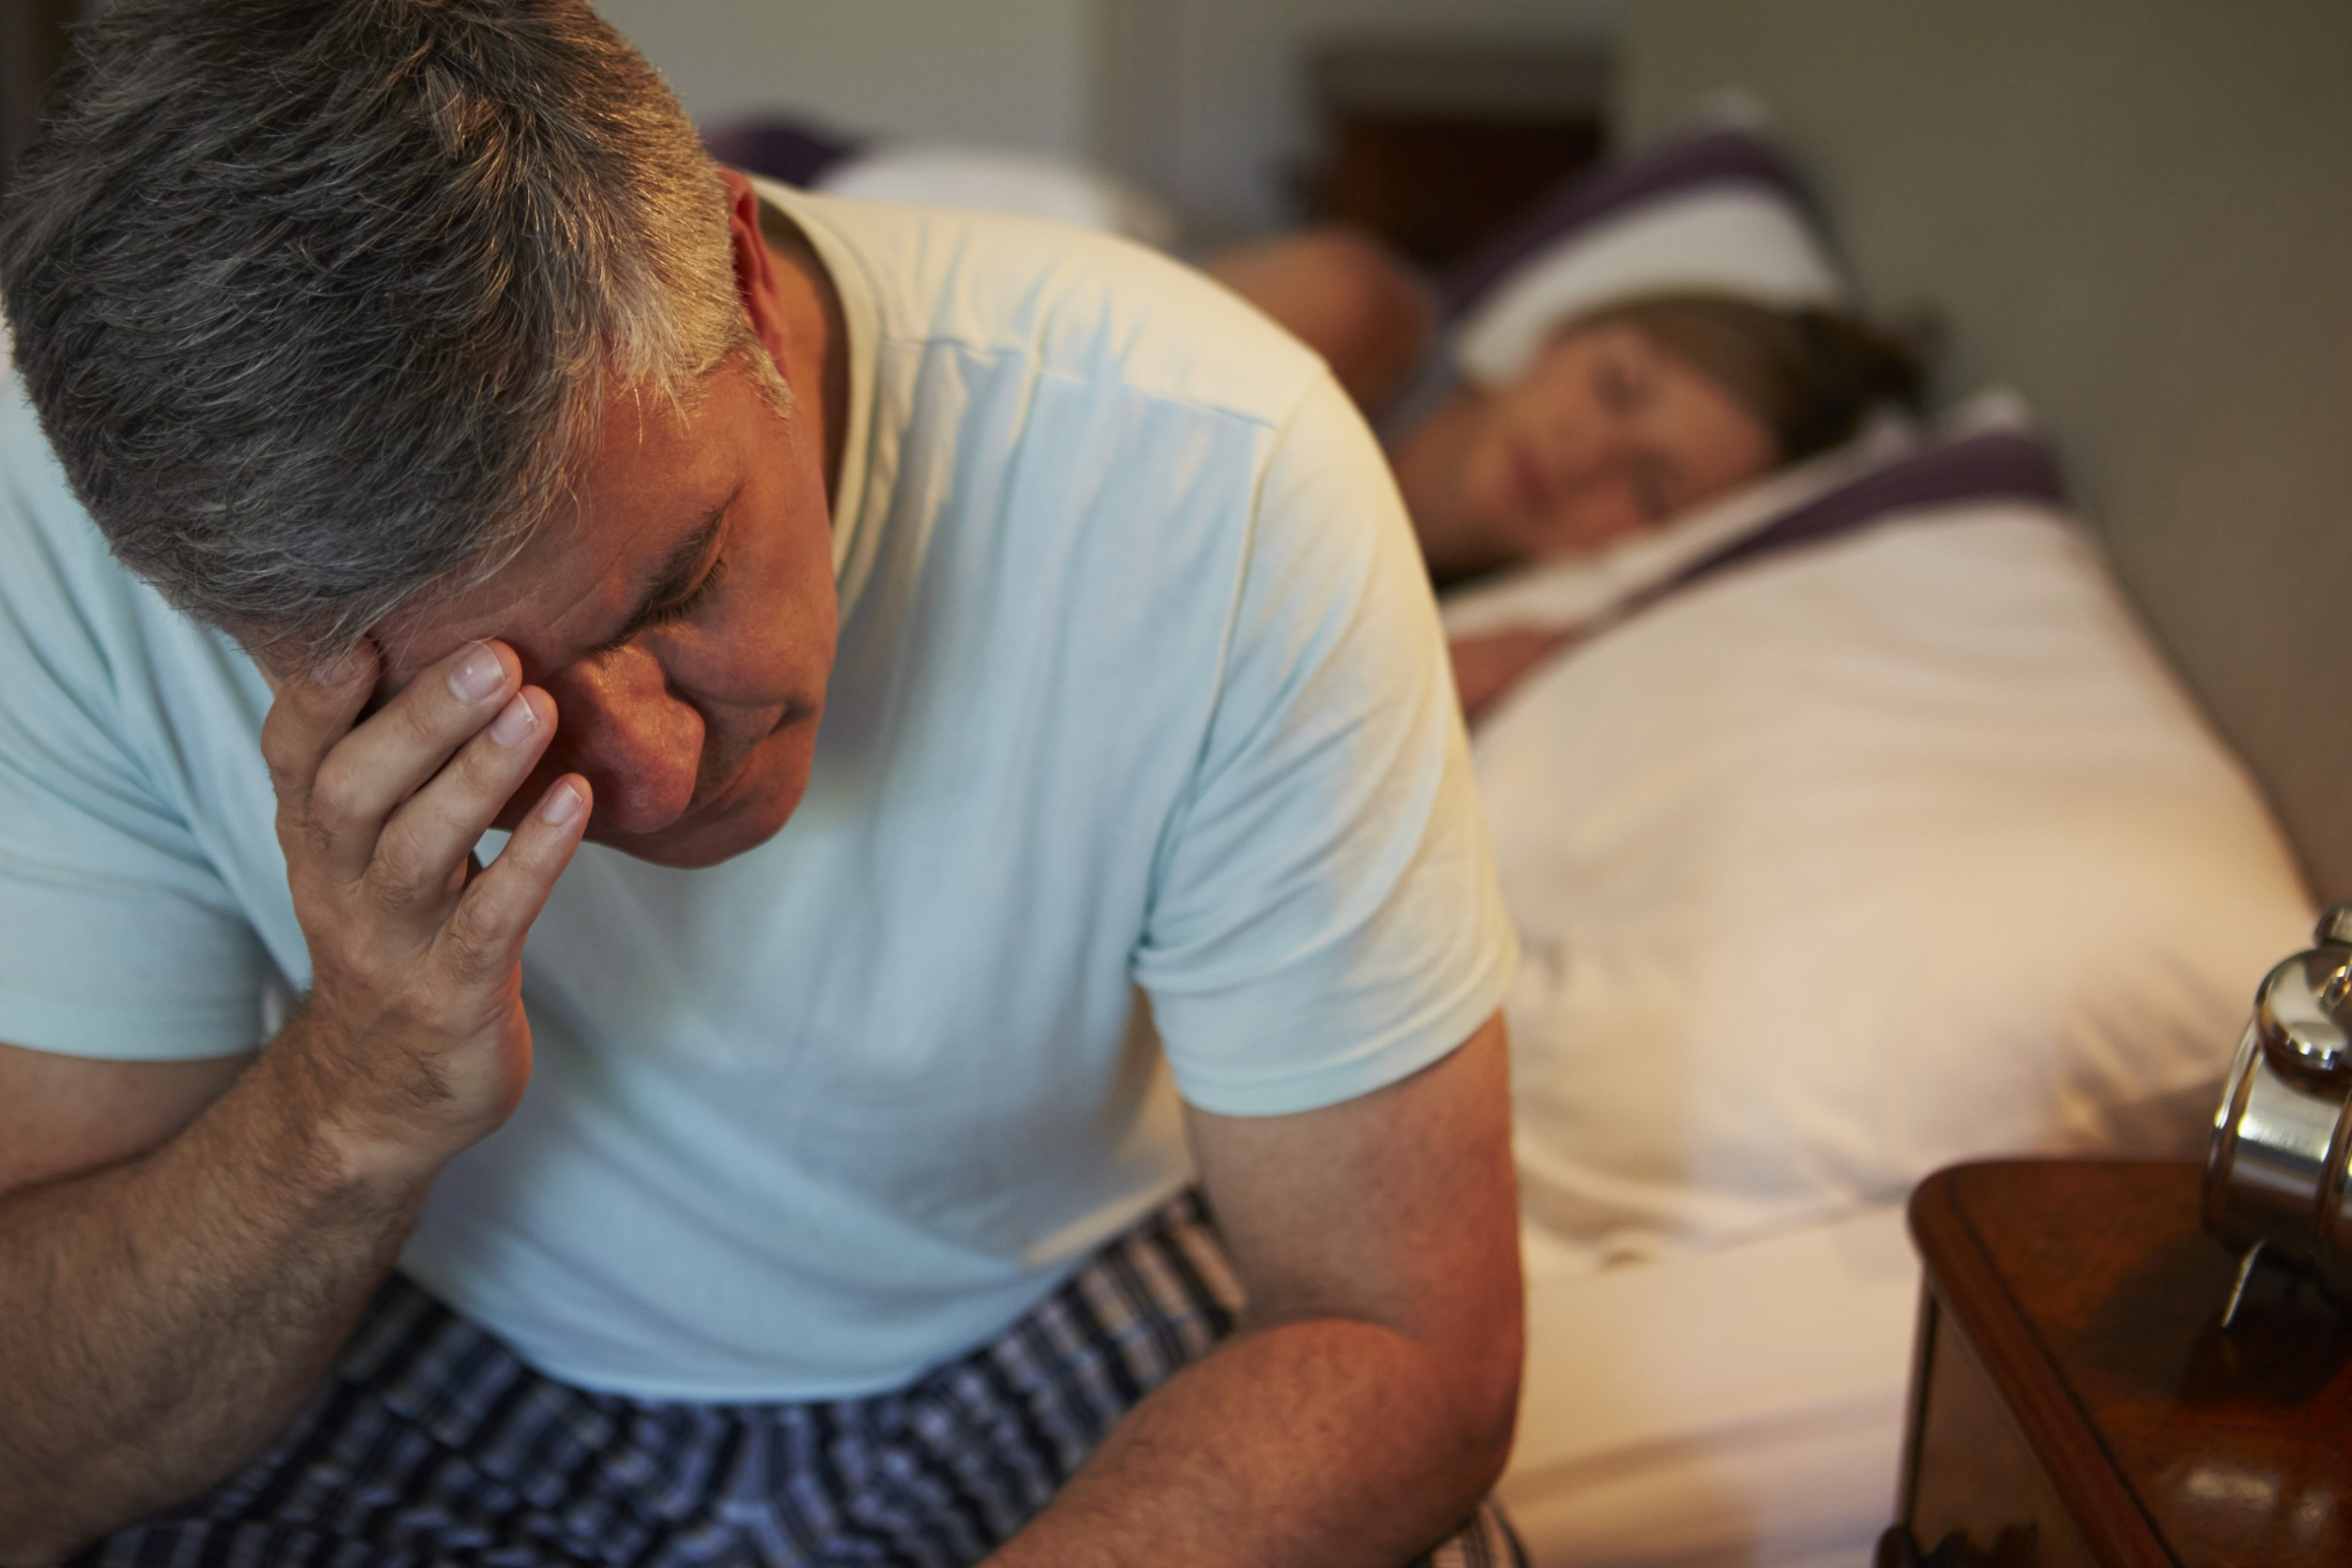 Symptoms of burnout include insomnia, which can compound sensations of fatigue and the inability to function efficiently.